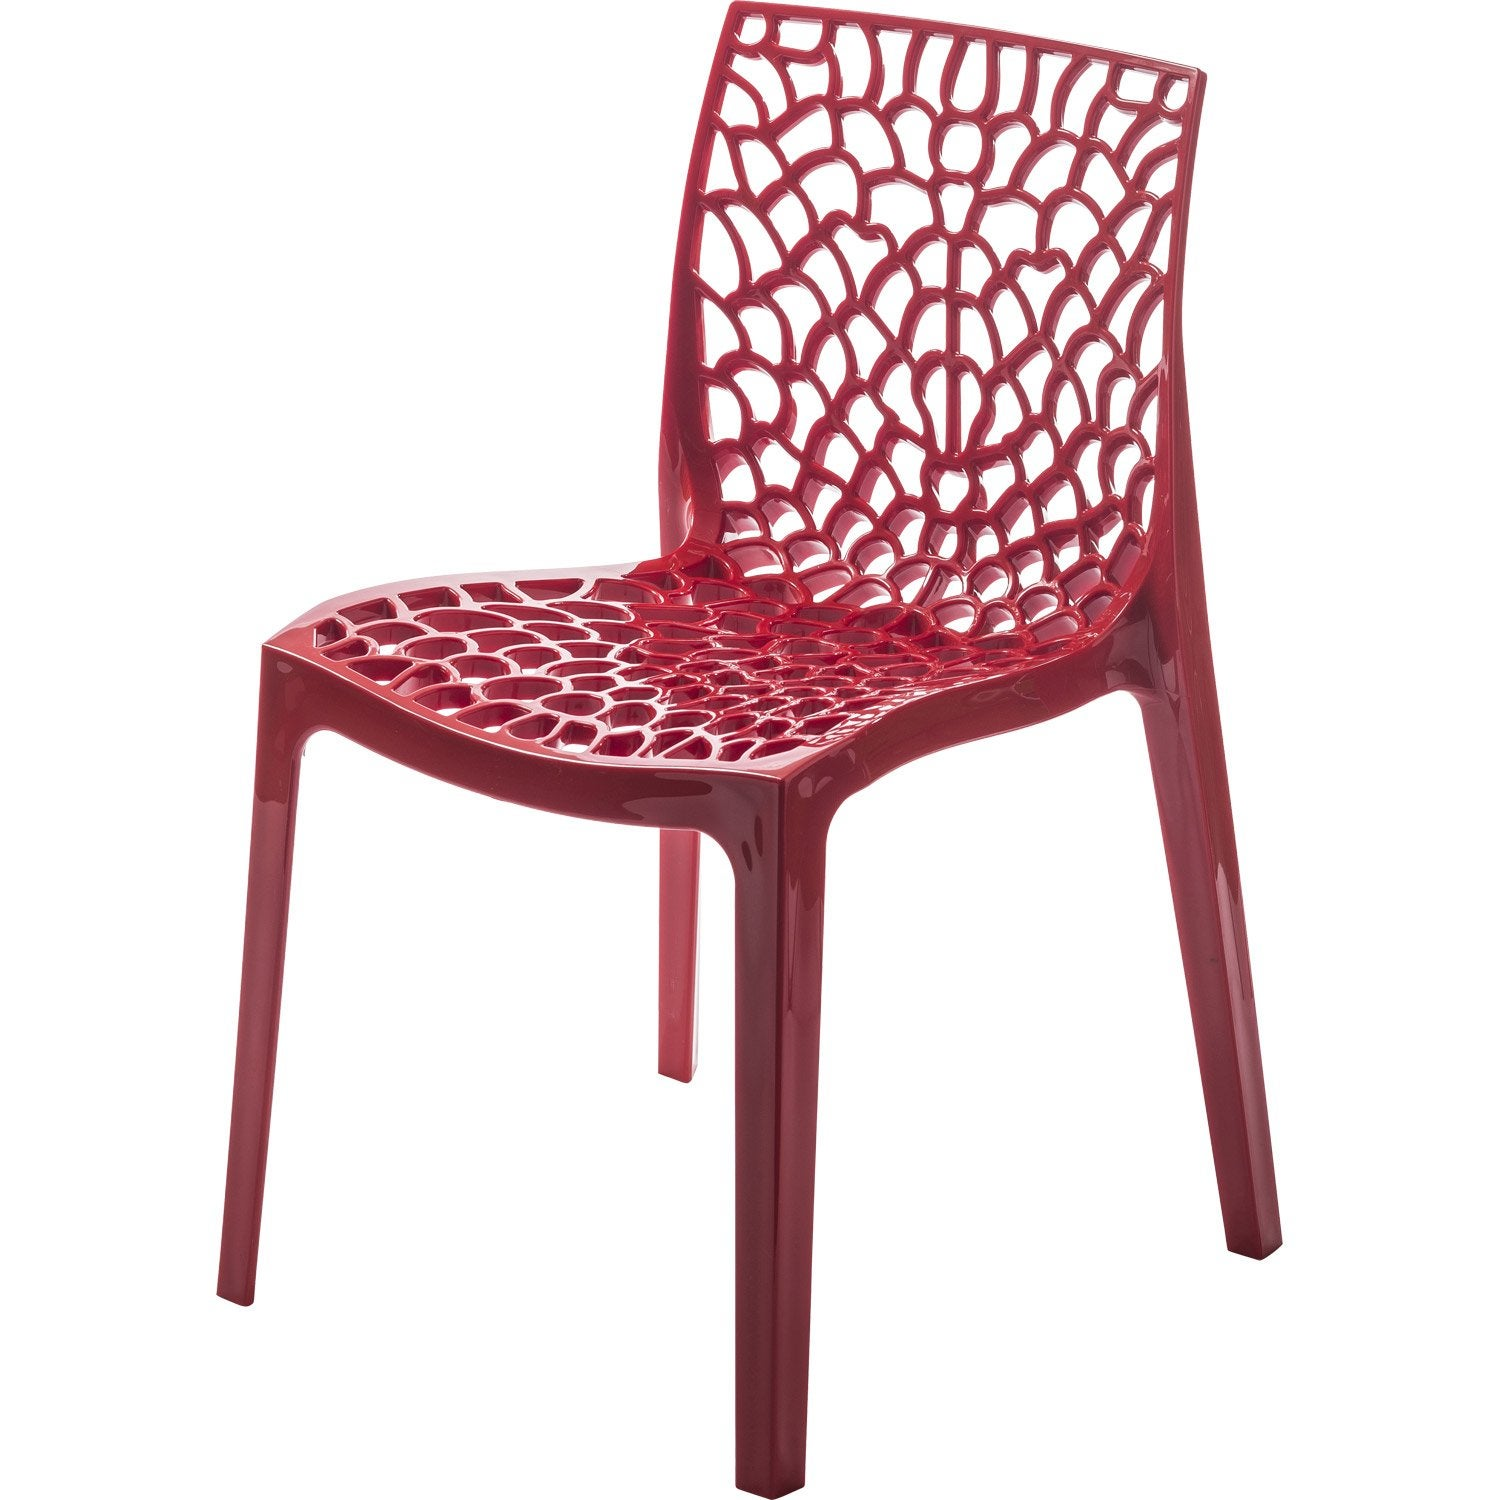 Chaise de jardin en r sine grafik rouge leroy merlin for Chaise cuisine rouge